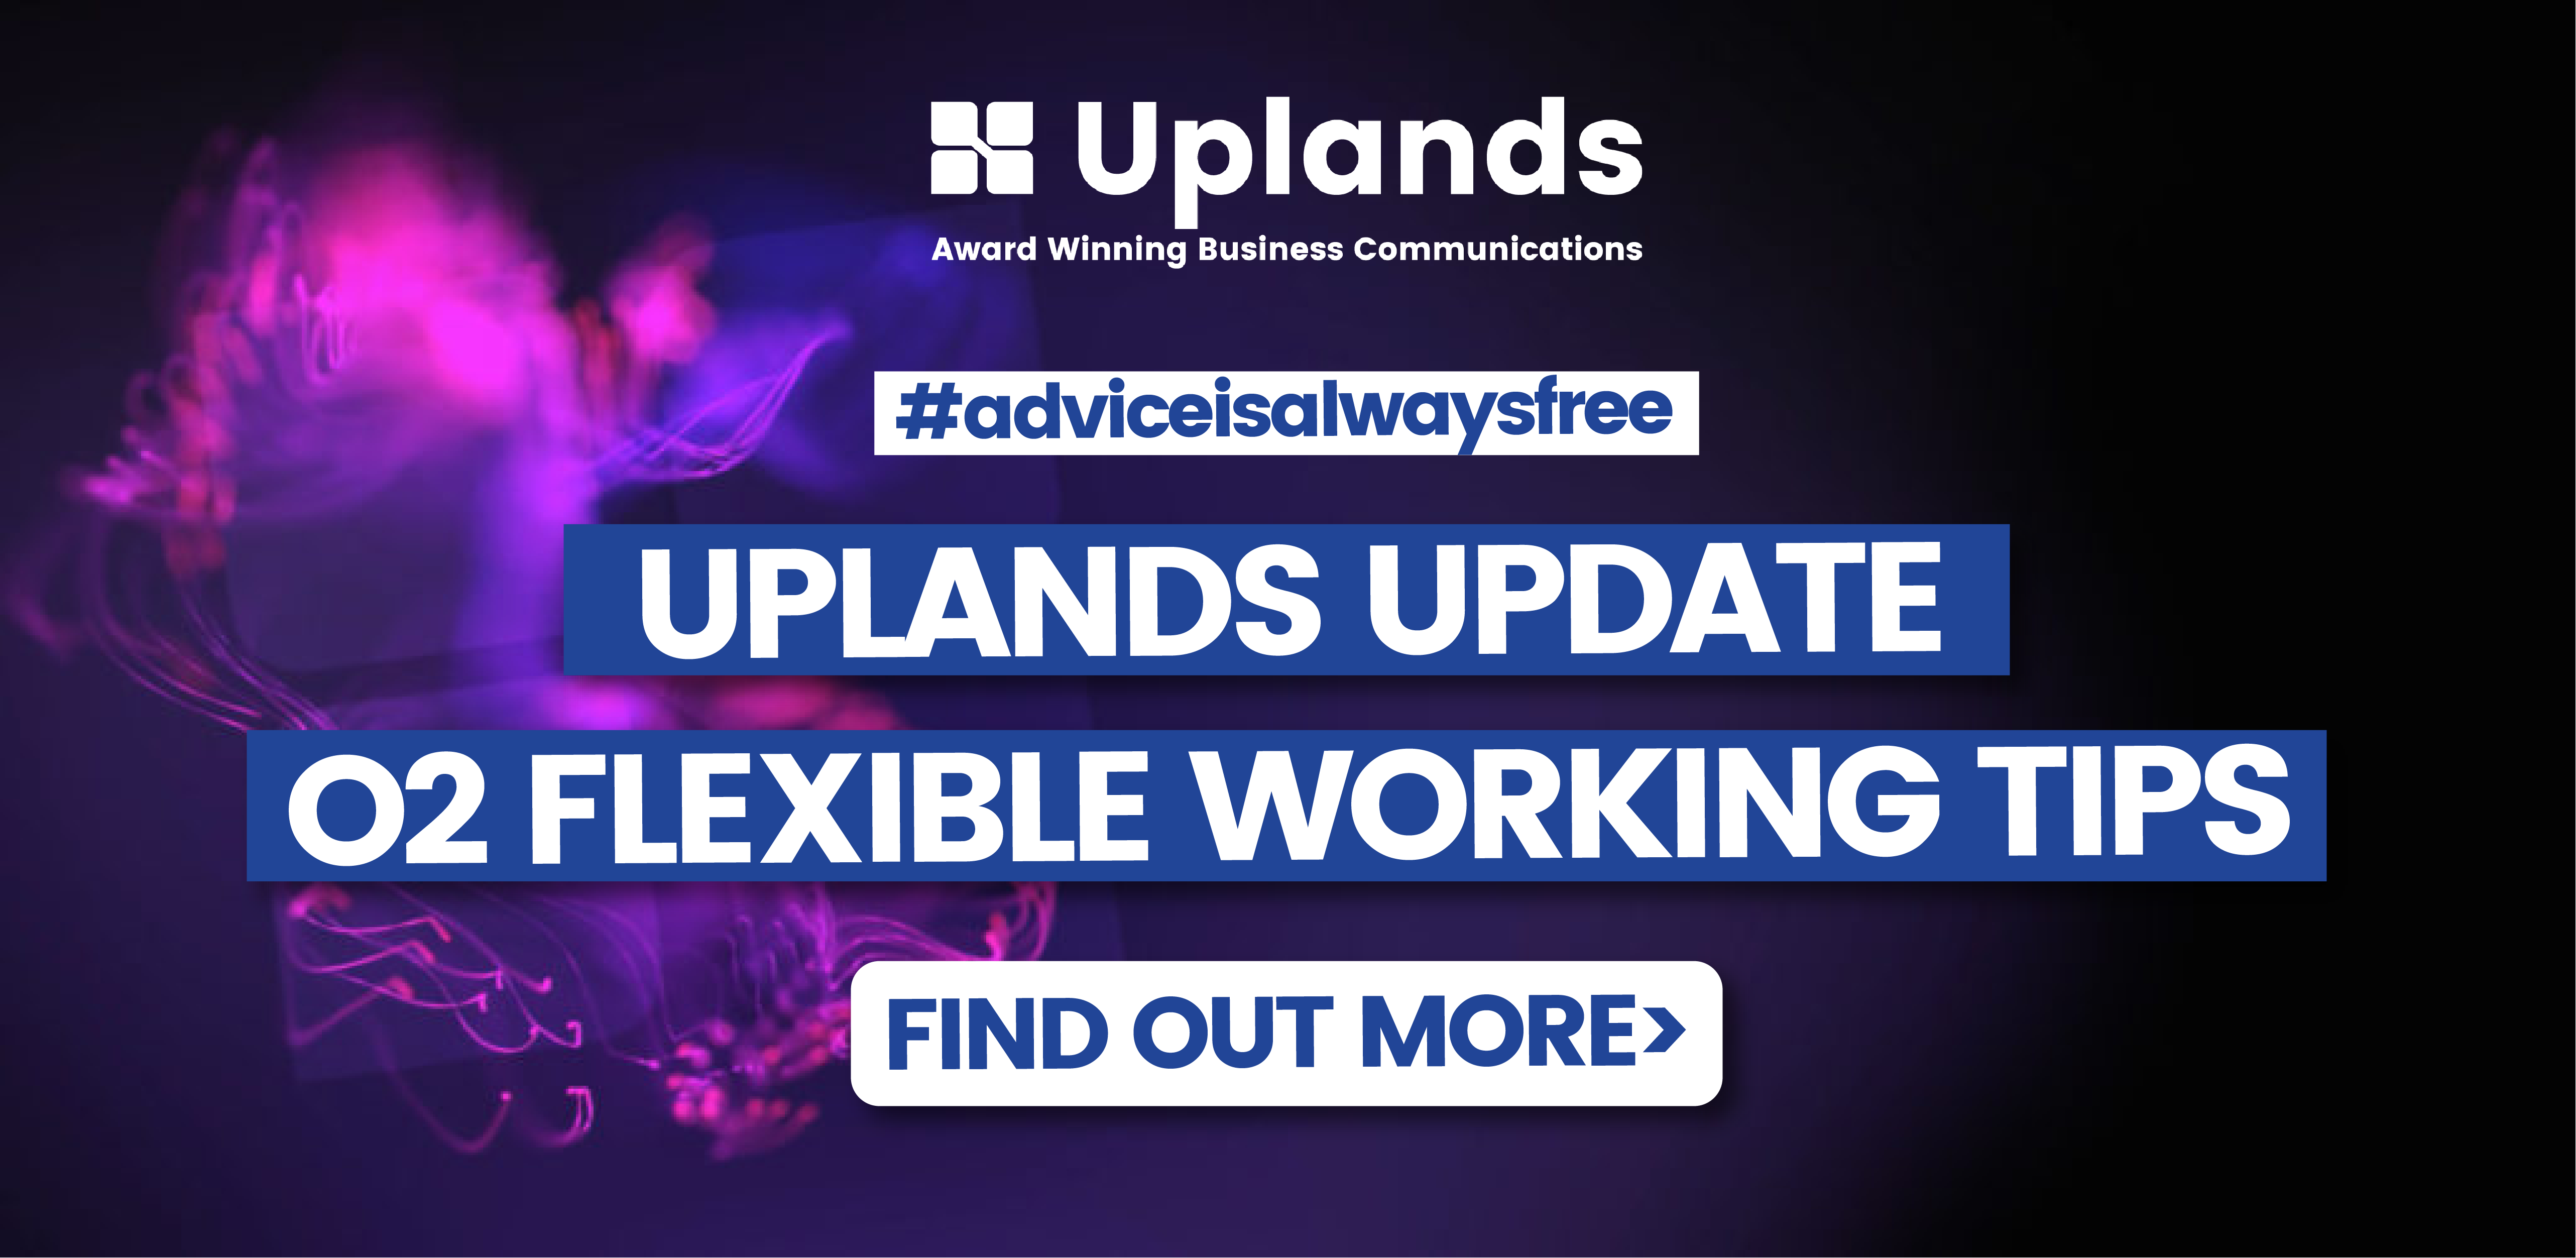 Uplands Update - O2 Flexible Working Tips